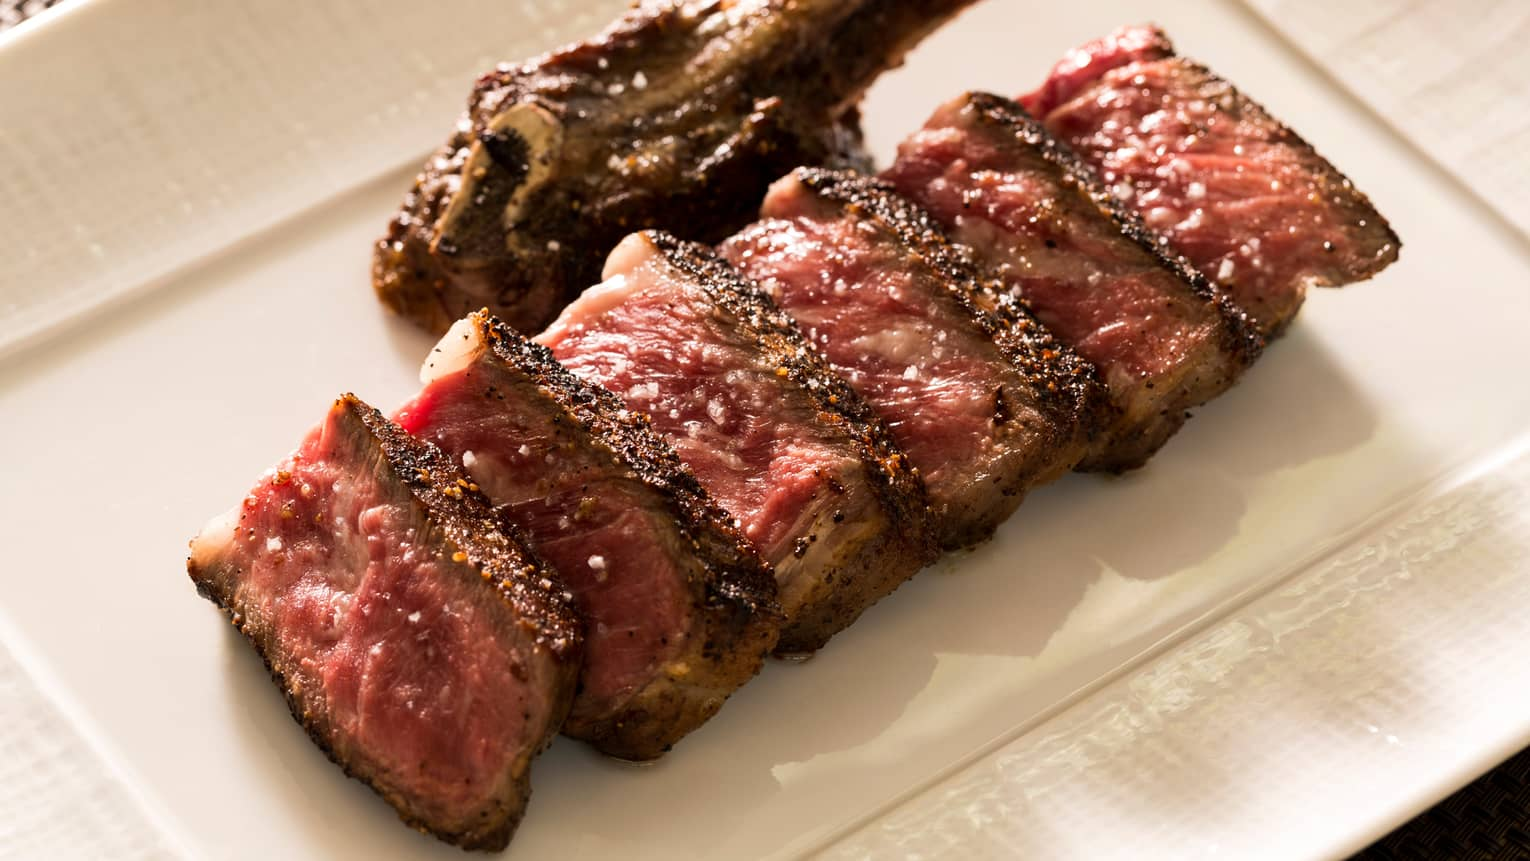 Japanese Pure Wagyu Beef slices of sirloin steak on white platter